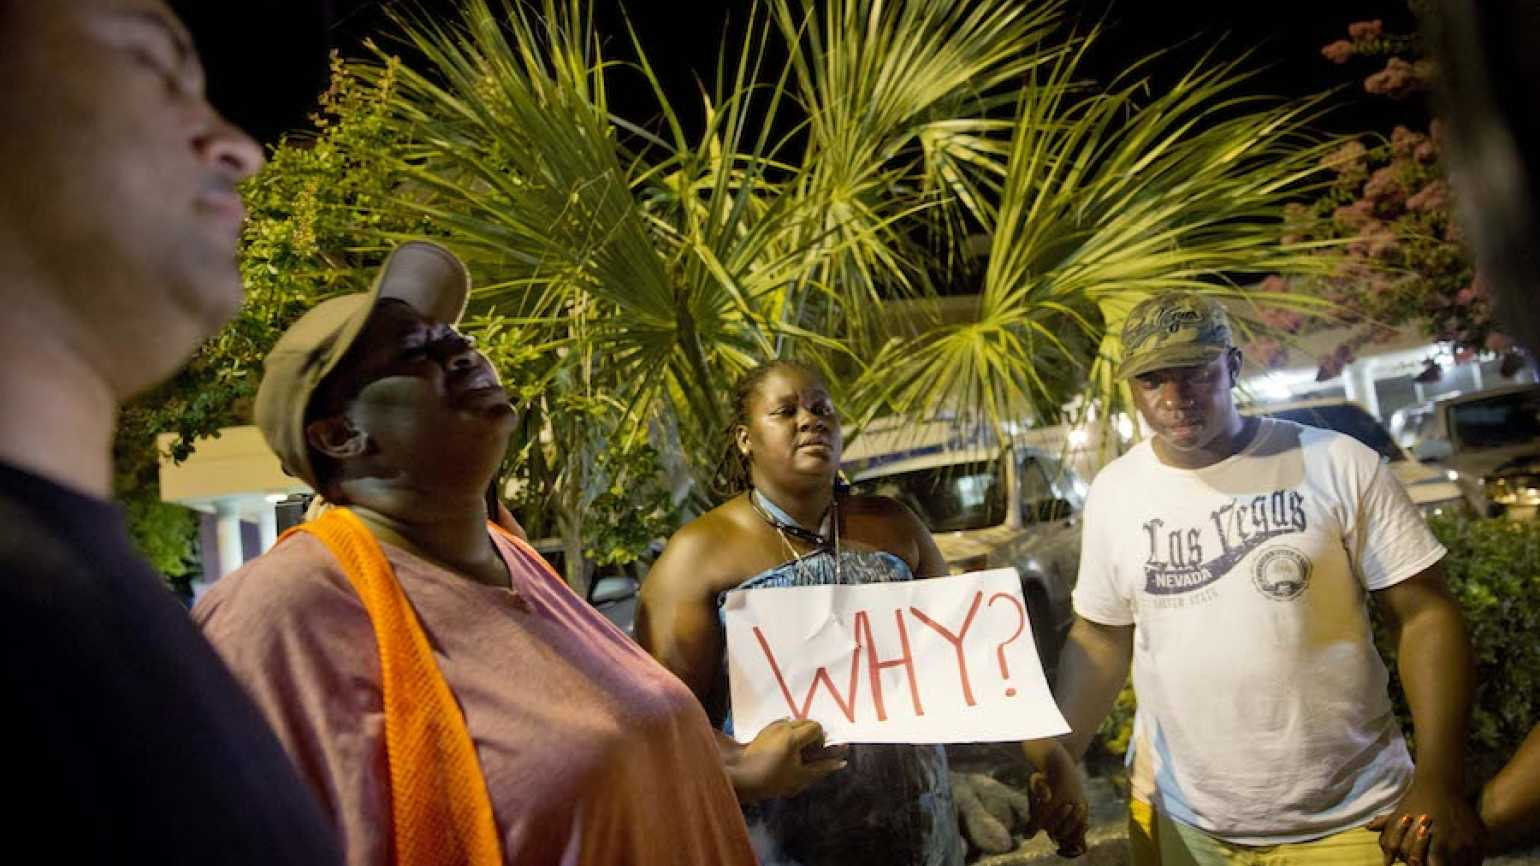 Charleston church shootings prayer circle; Guideposts